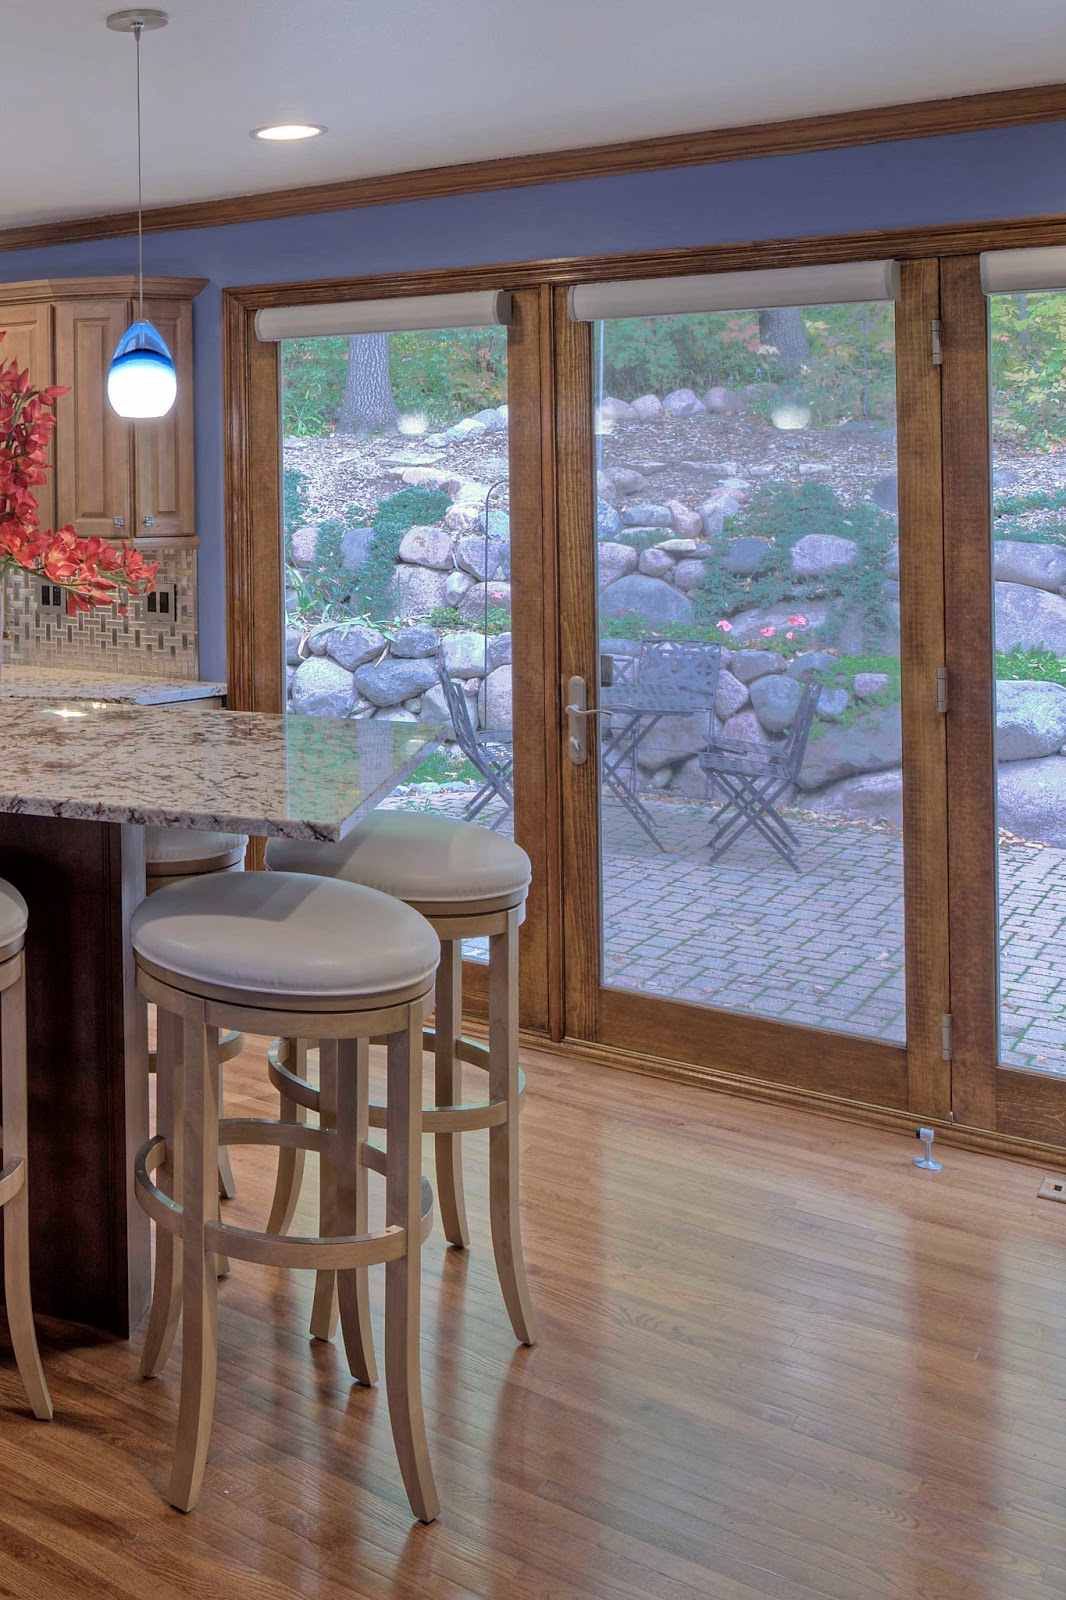 Patio Door Replacement Offers Many Choices - Callen Construction